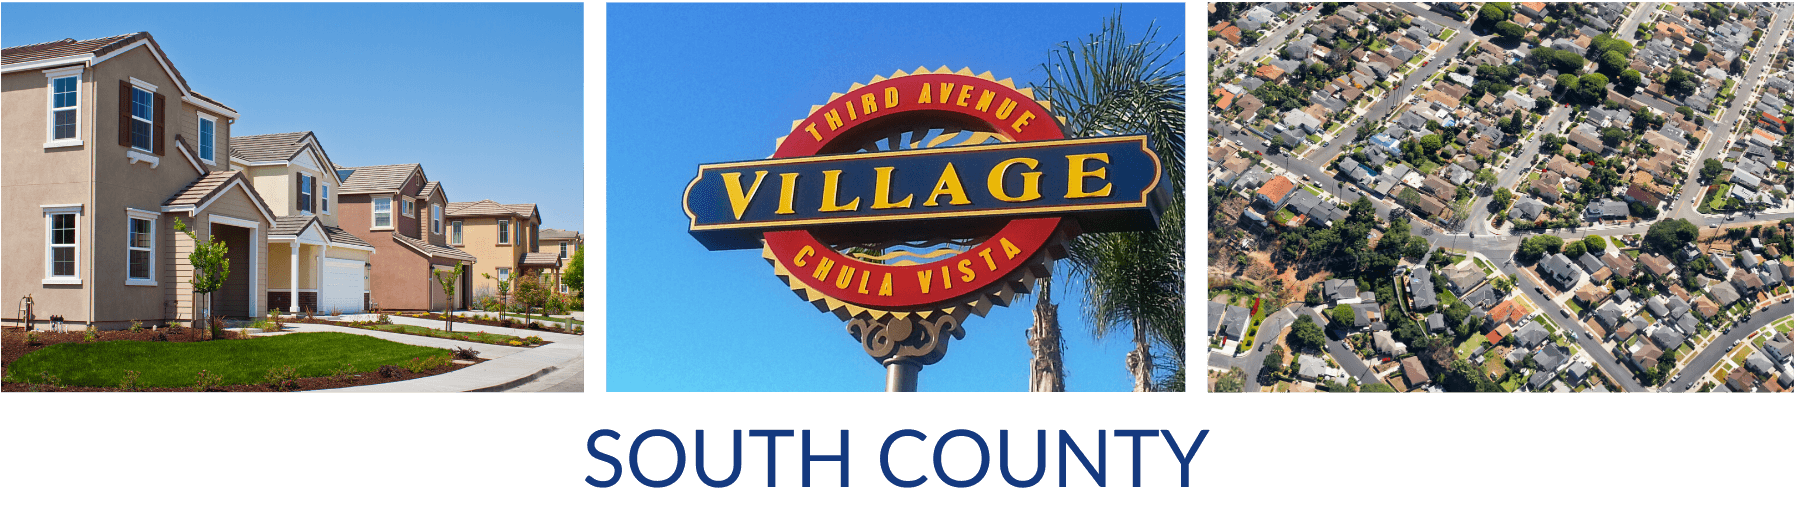 South County